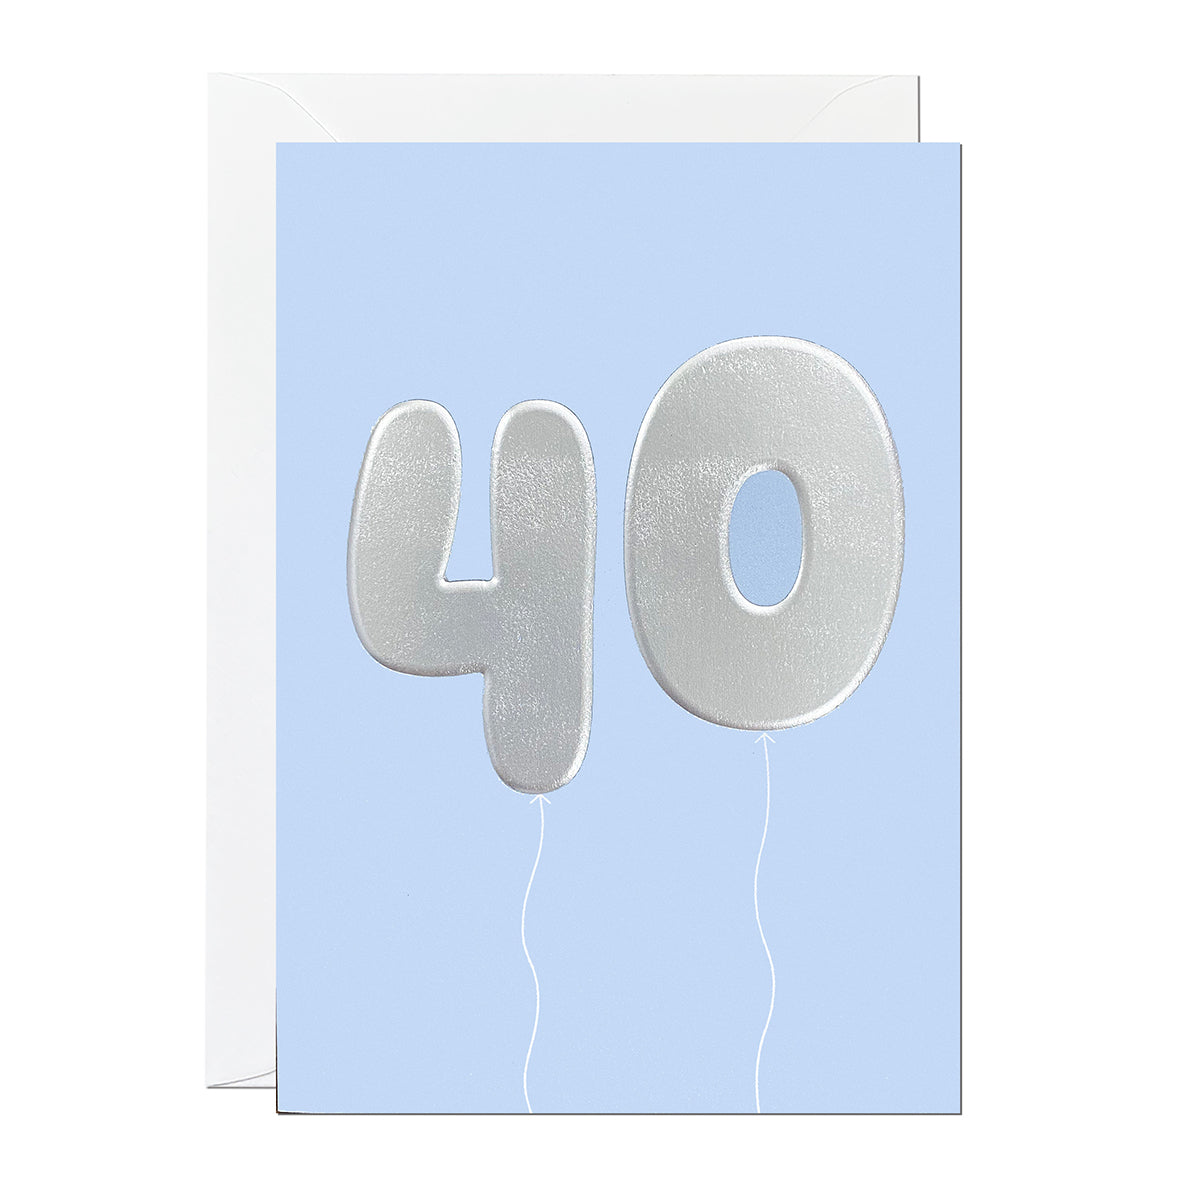 A 40th birthday card featuring big helium balloons printed with an embossed silver foil on a blue card.